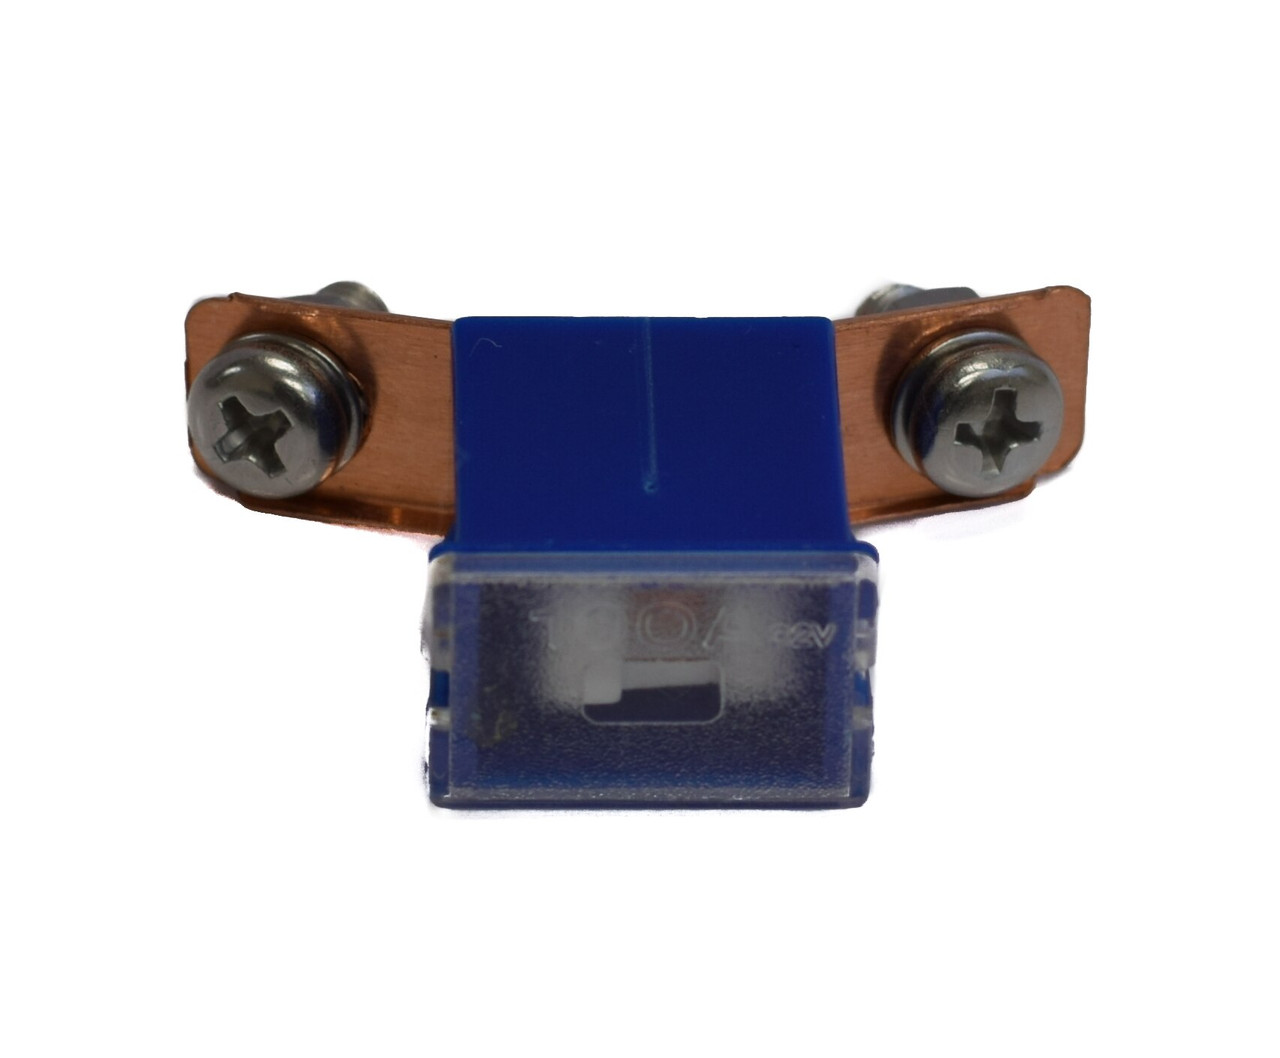 Raion Power RBC7 100A Fuse Includes Nuts & Bolts For APC BackUPS Pro 1400